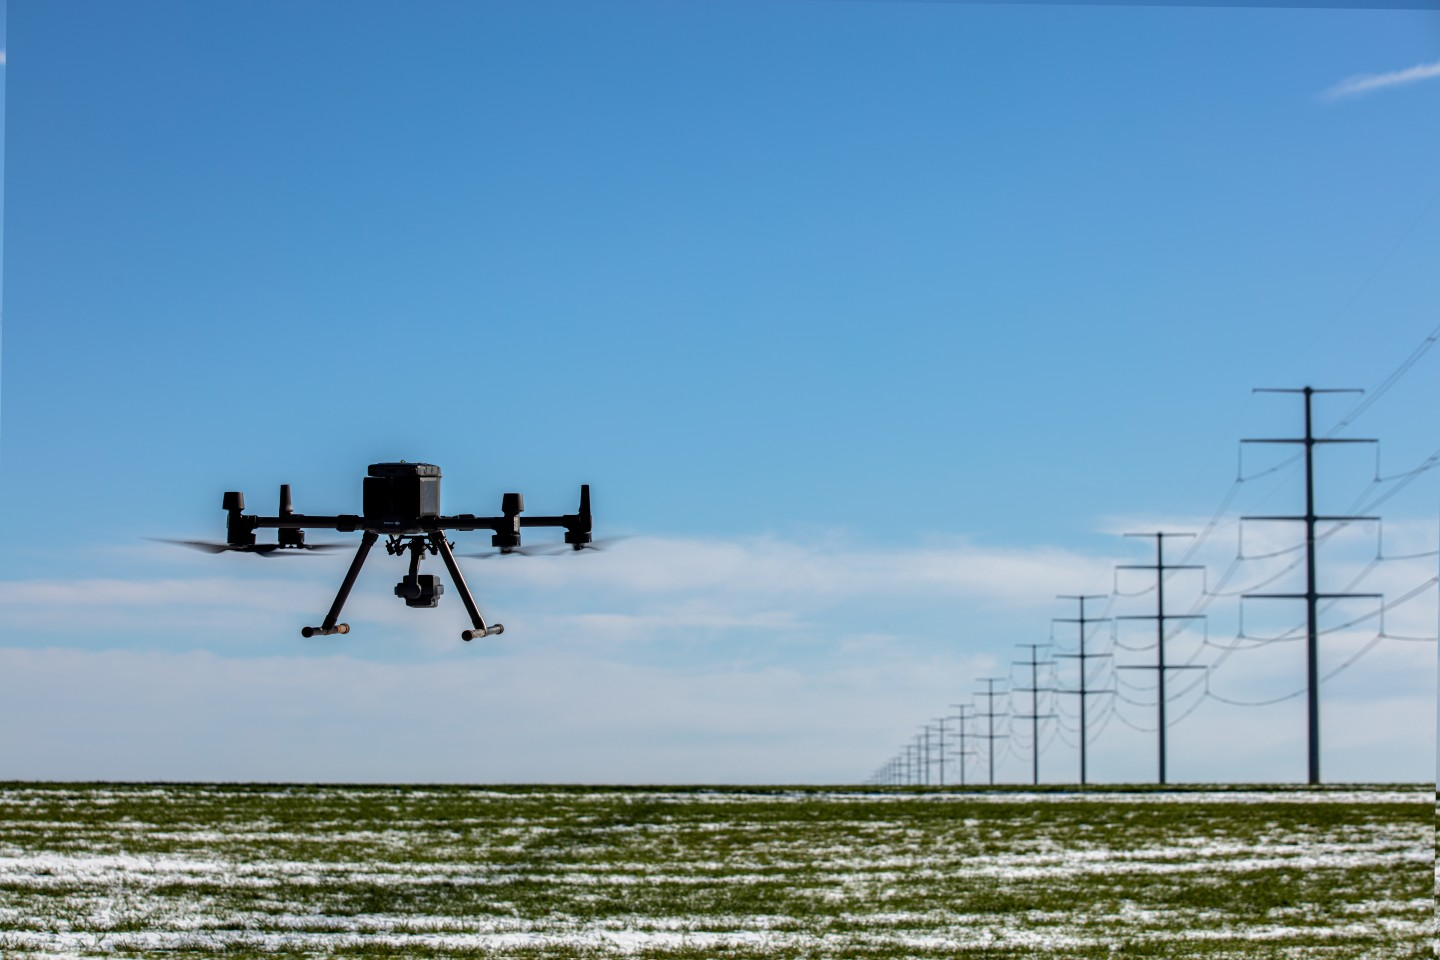 The Matrice 300 RTK drone can stream HD video to an operator 15 km away